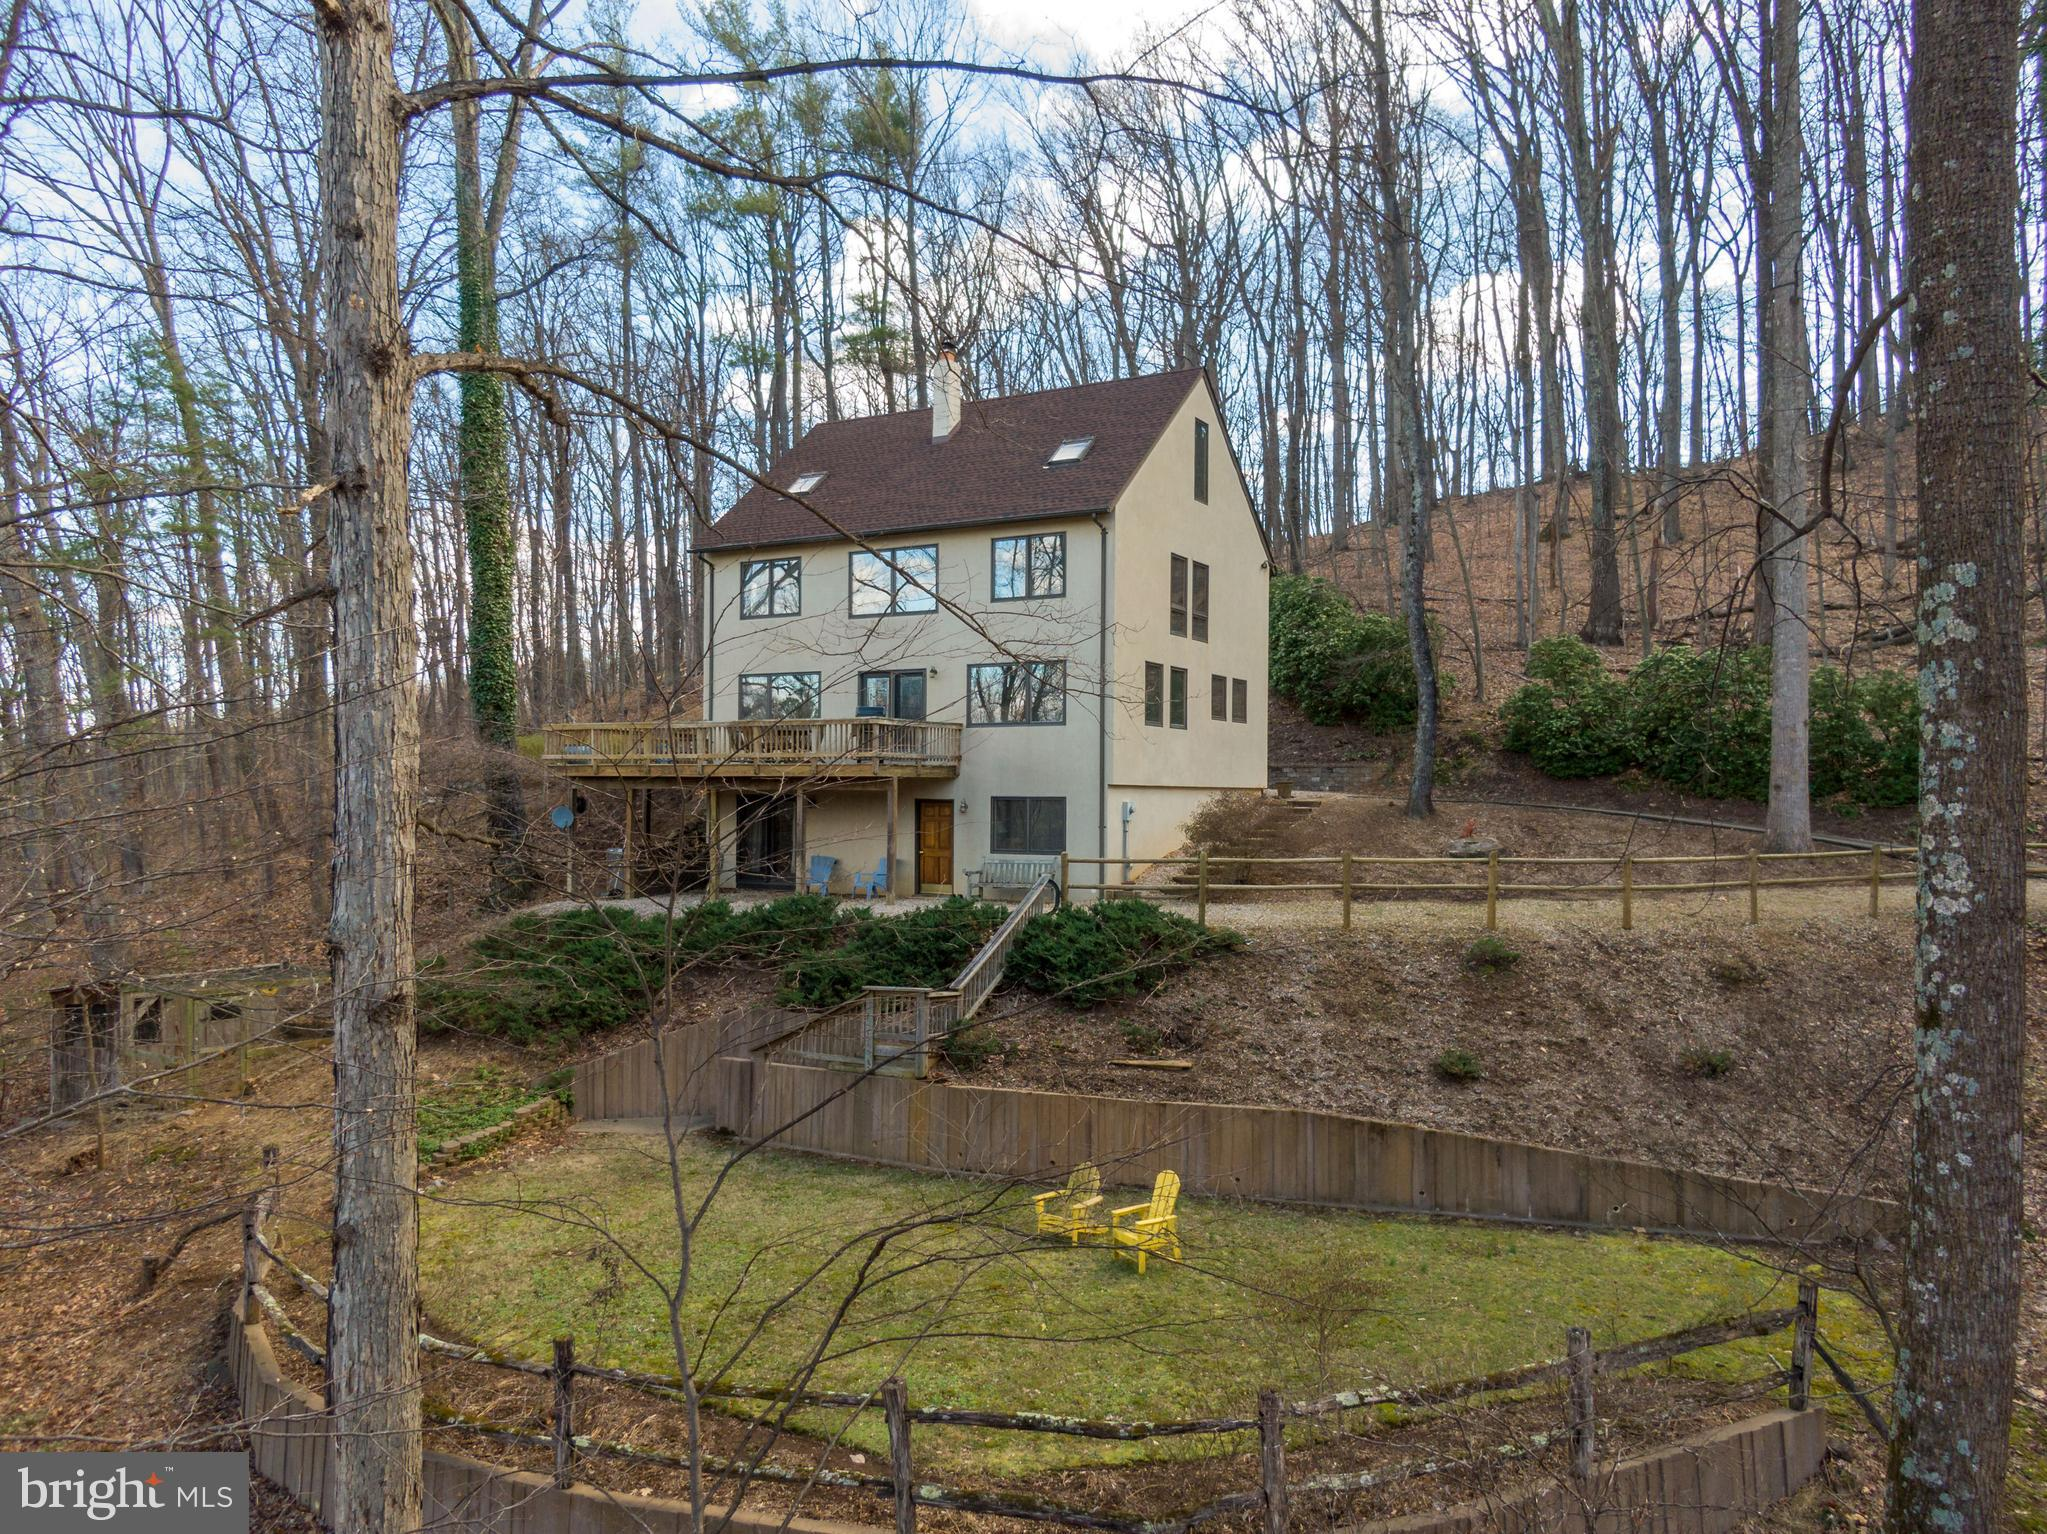 2793 Heartwood Road, Afton, VA 22920